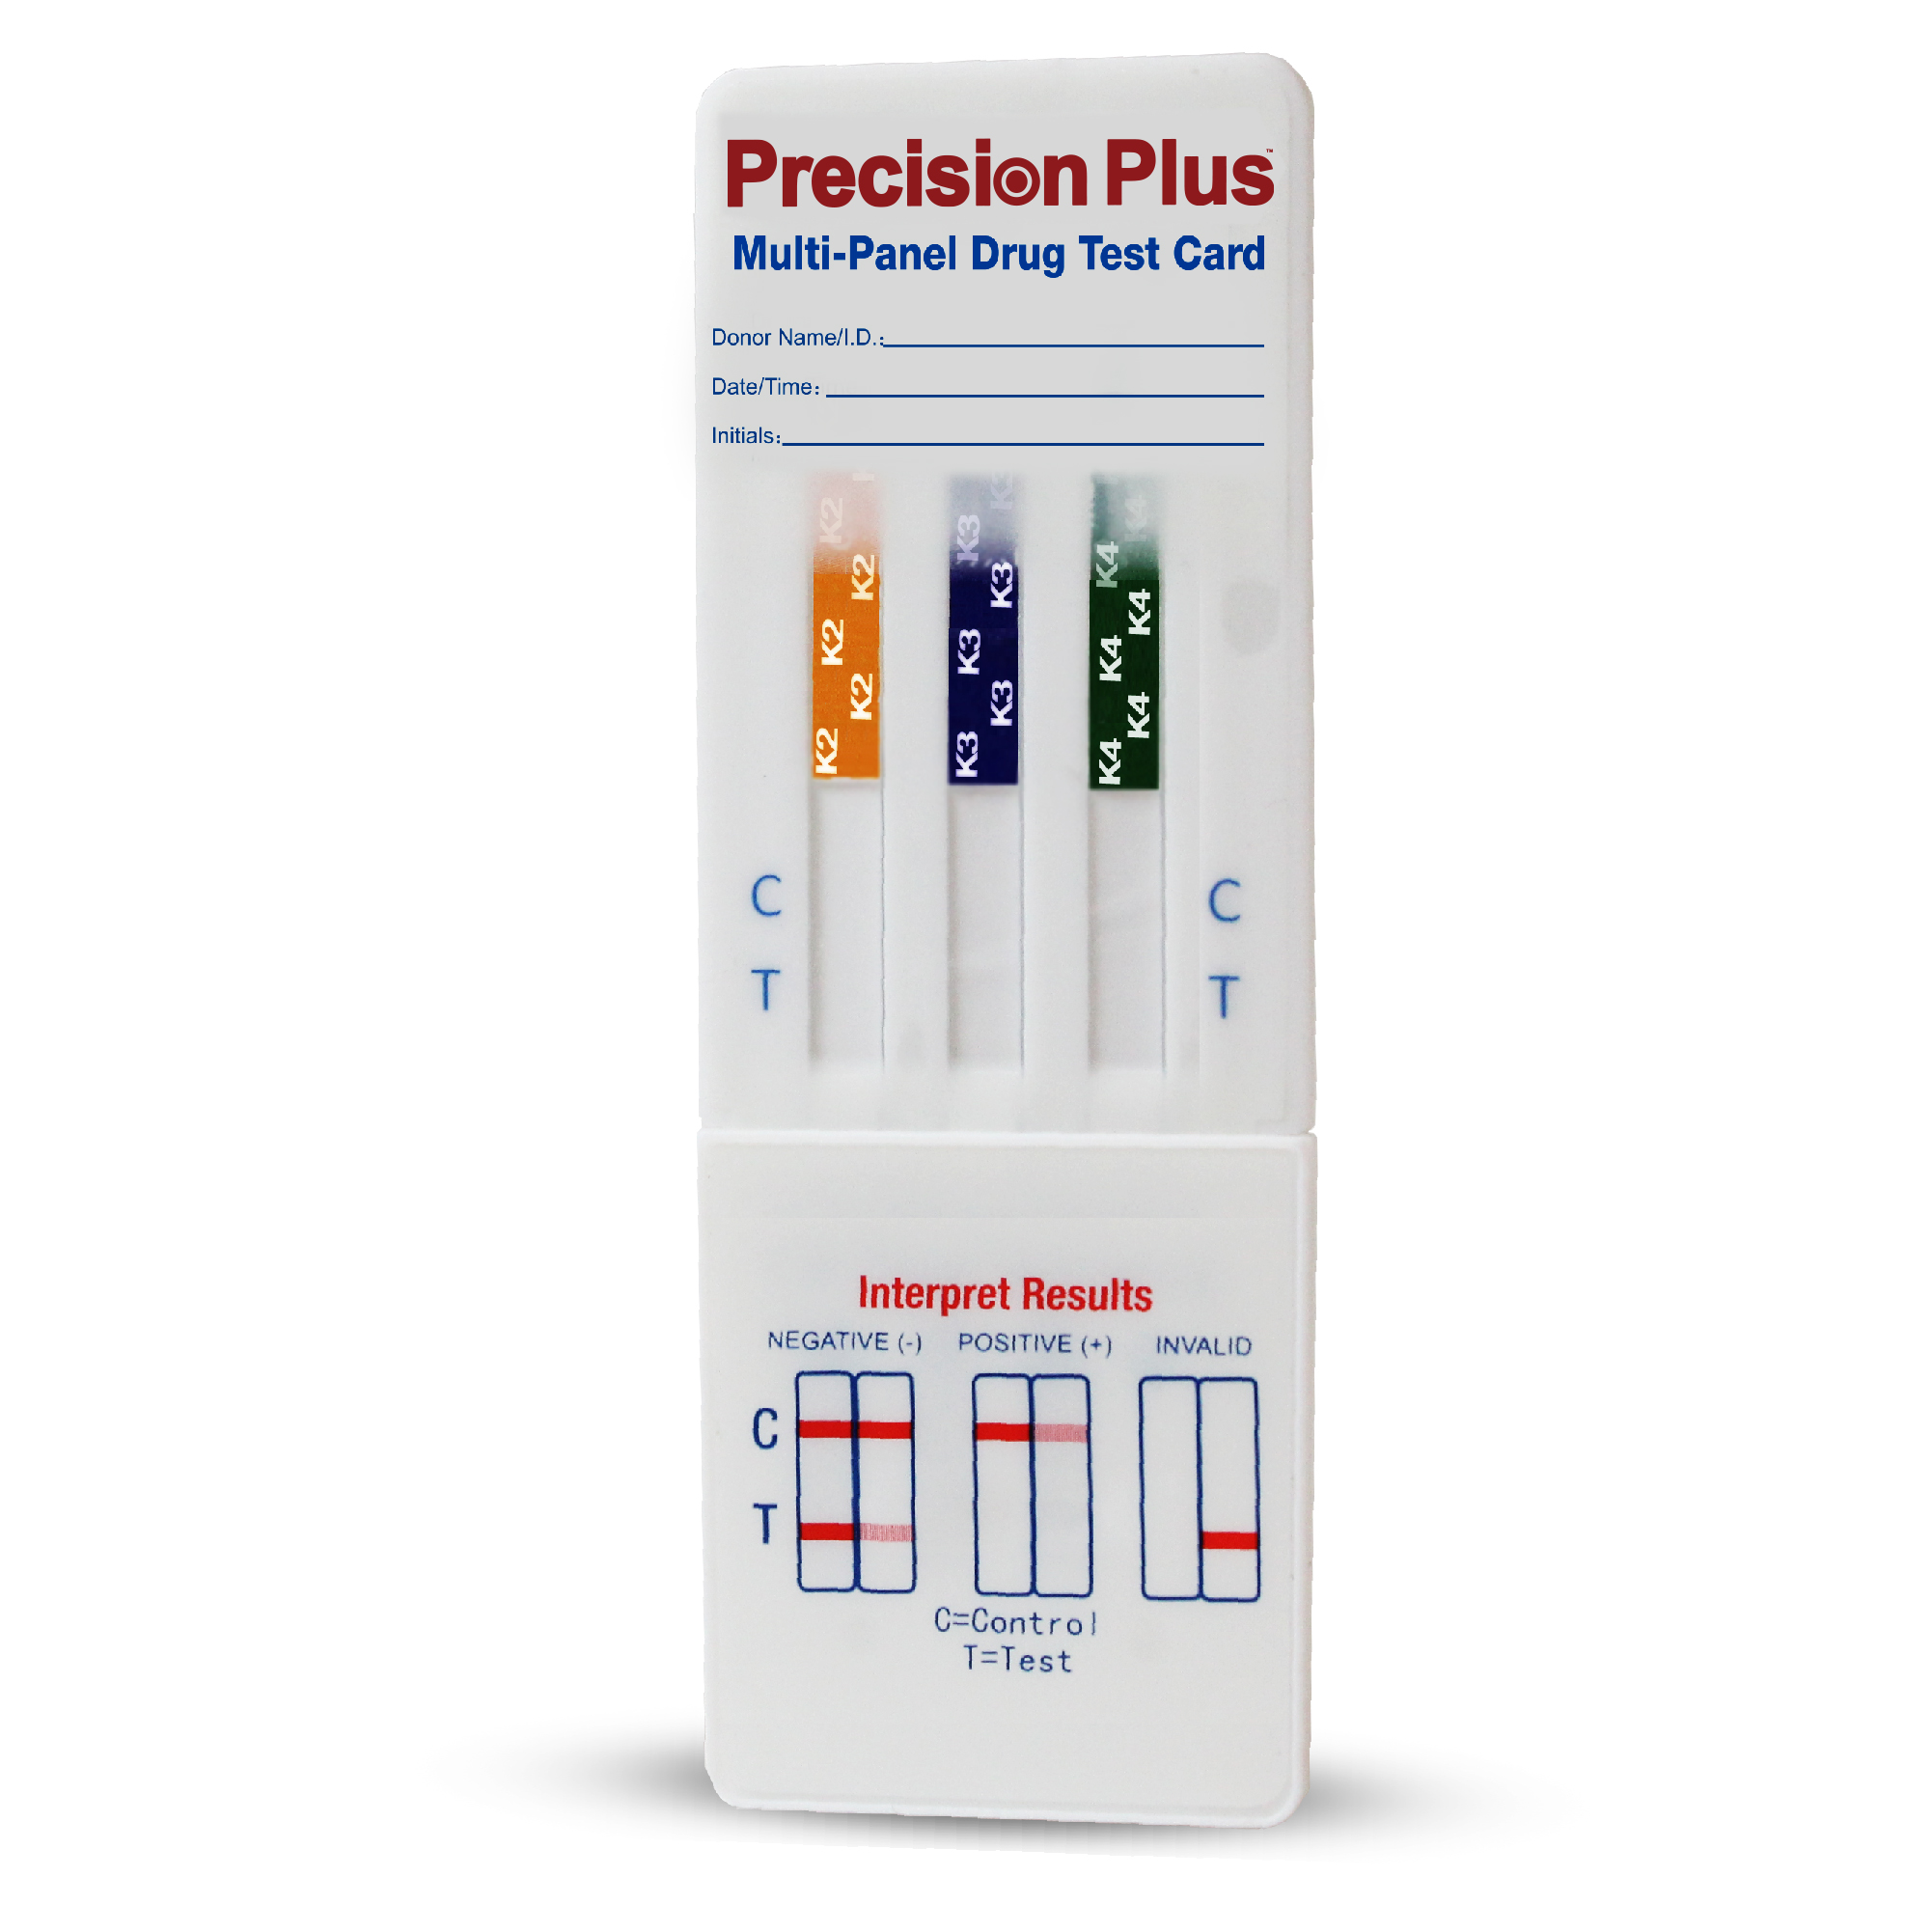 Precision Plus- 3 Panel Dip card (K2/K3/K4)